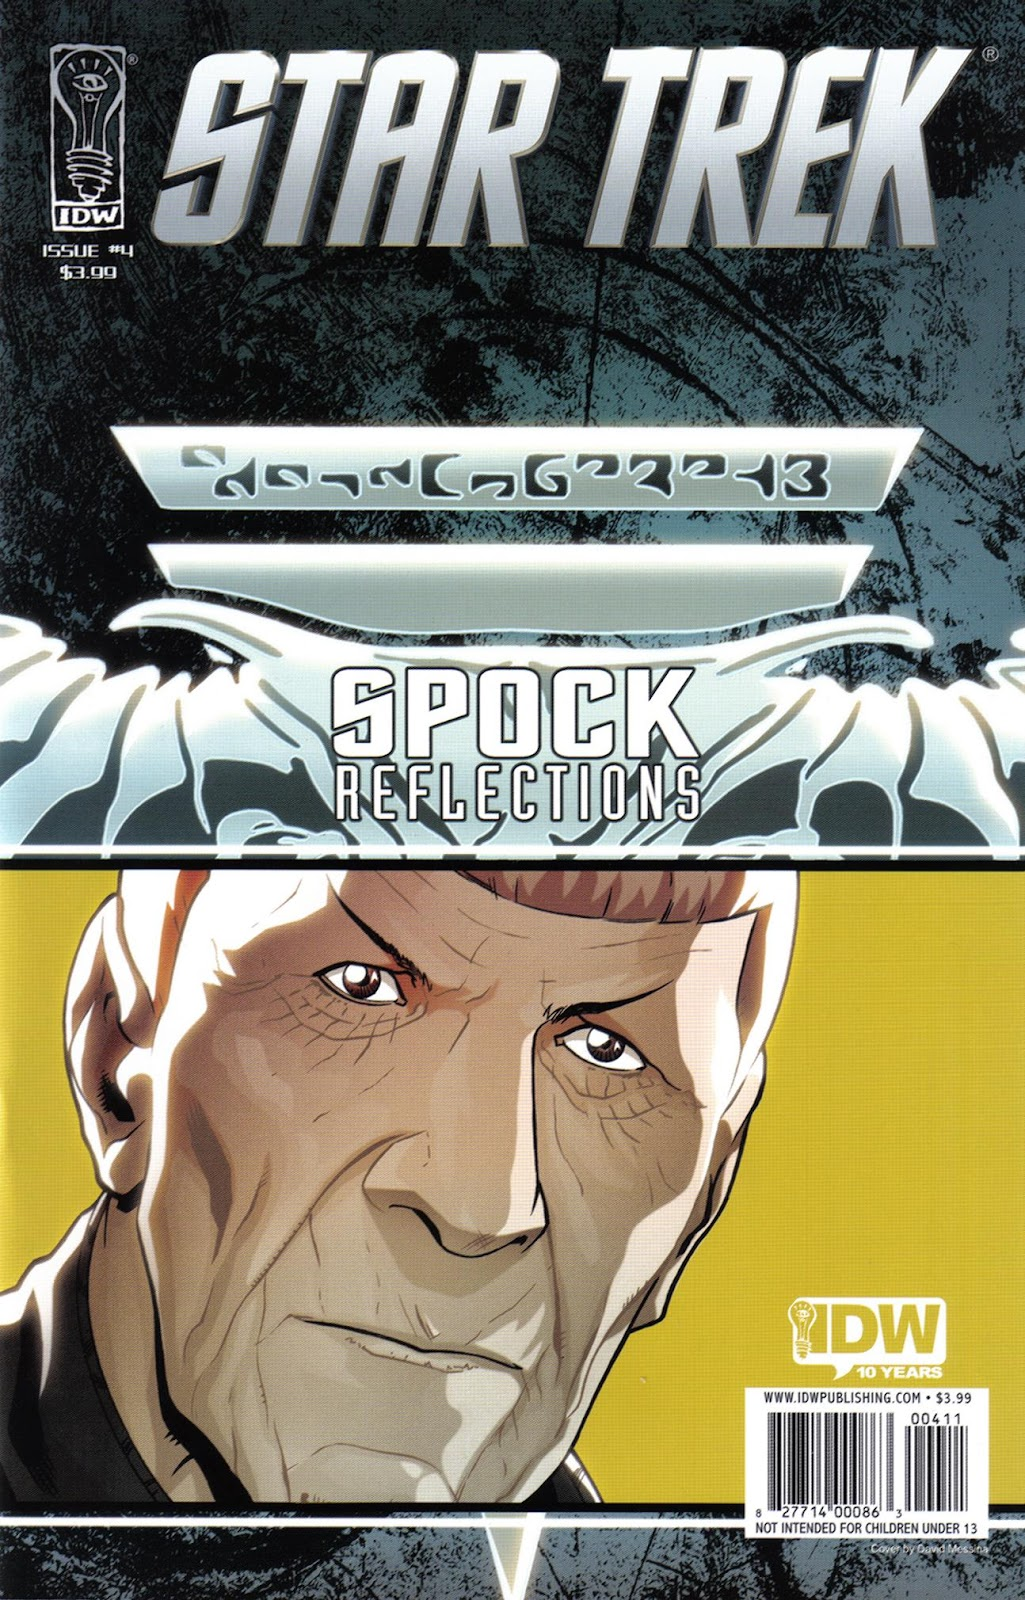 Star Trek: Spock: Reflections issue 4 - Page 1